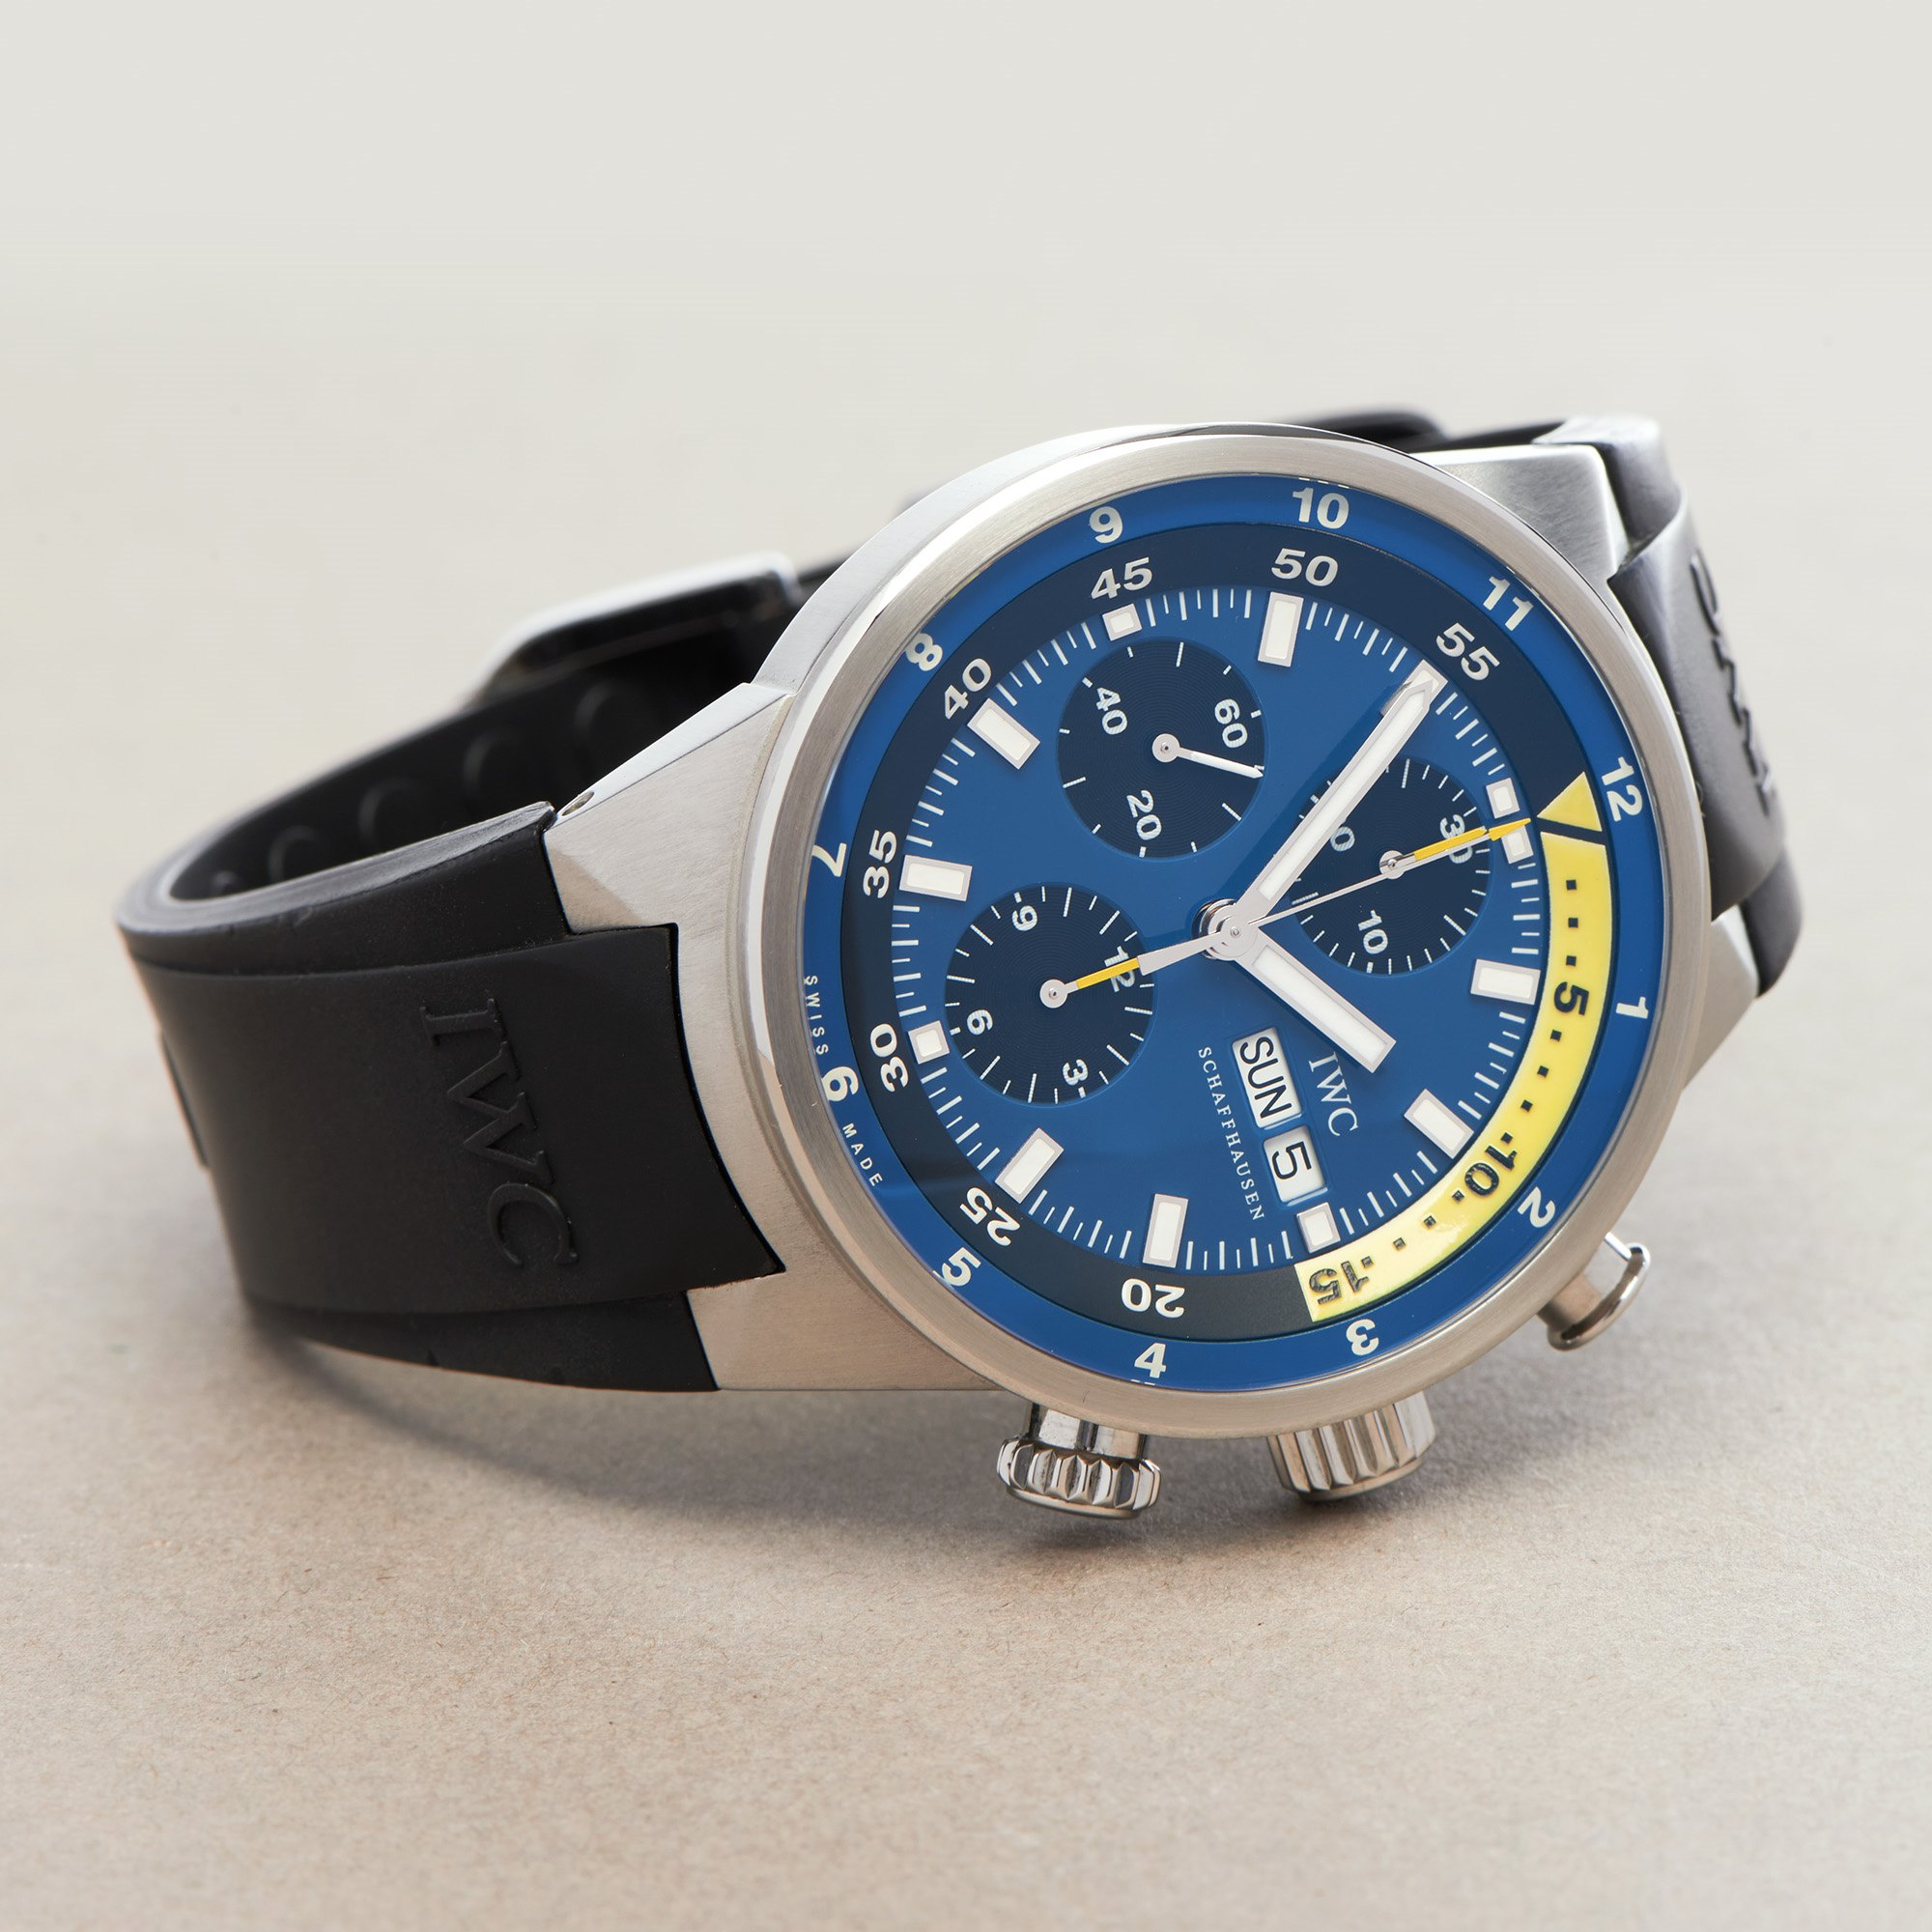 IWC Aquatimer Tribute To Calypso Ltd Edition of 2500 Stainless Steel IW378203